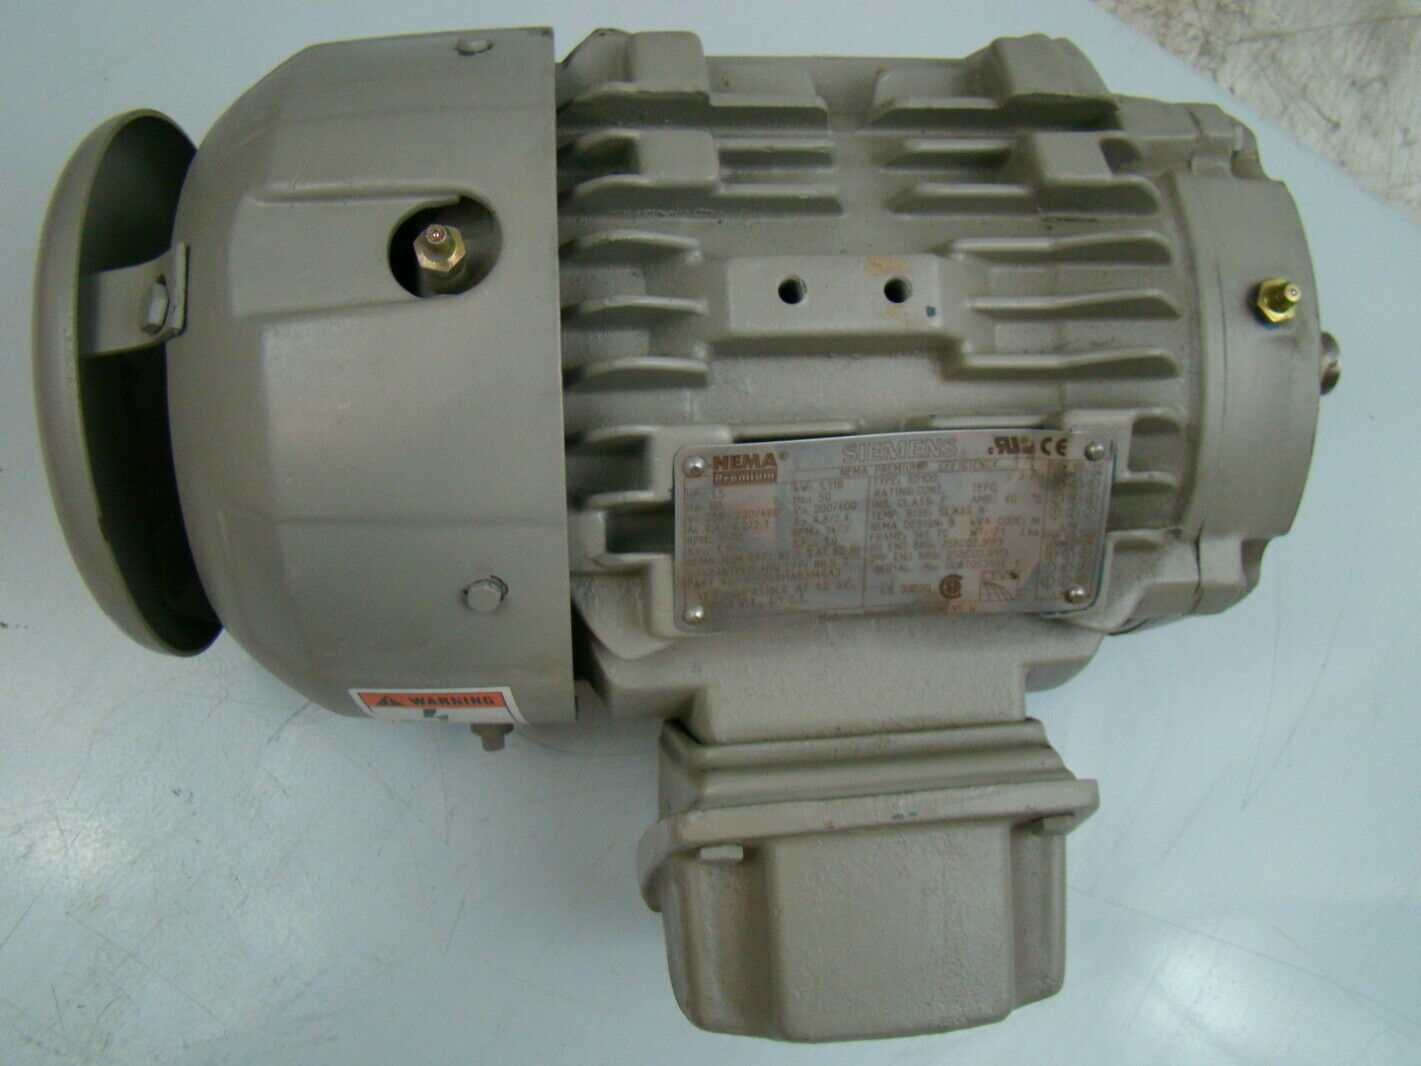 Siemens 1 5 hp 1770 rpm electric motor 1le23111ab314ga3 for Electric motor 1 5 hp